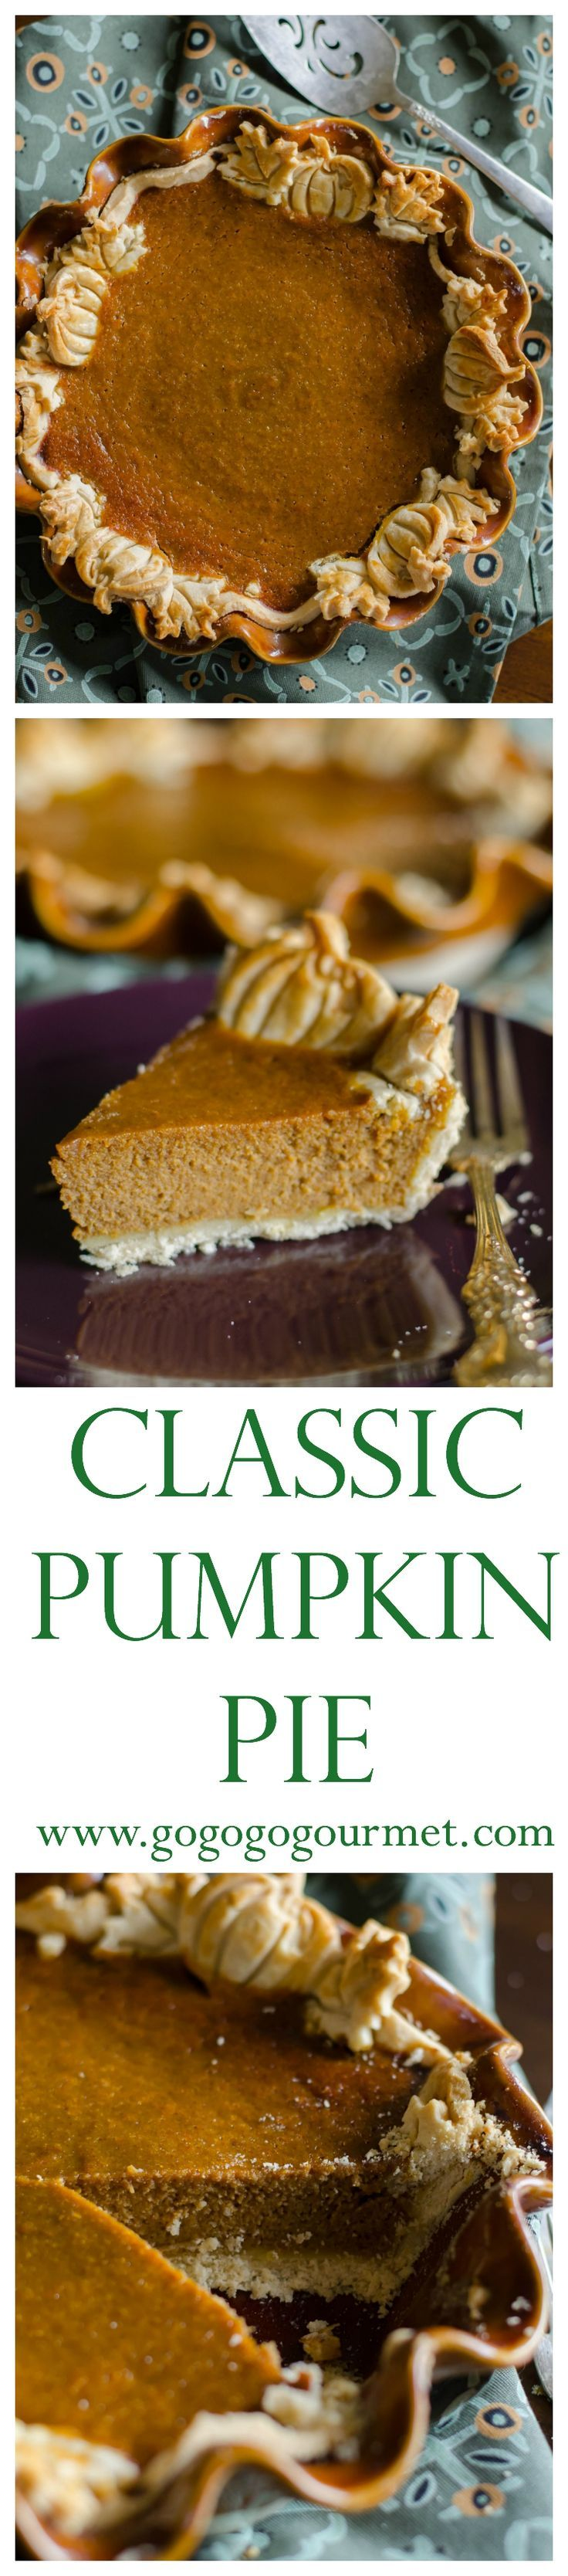 No reason to gussy up pumpkin pie- this classic pumpkin pie is best! | Go Go Go Gourmet /gogogogourmet/